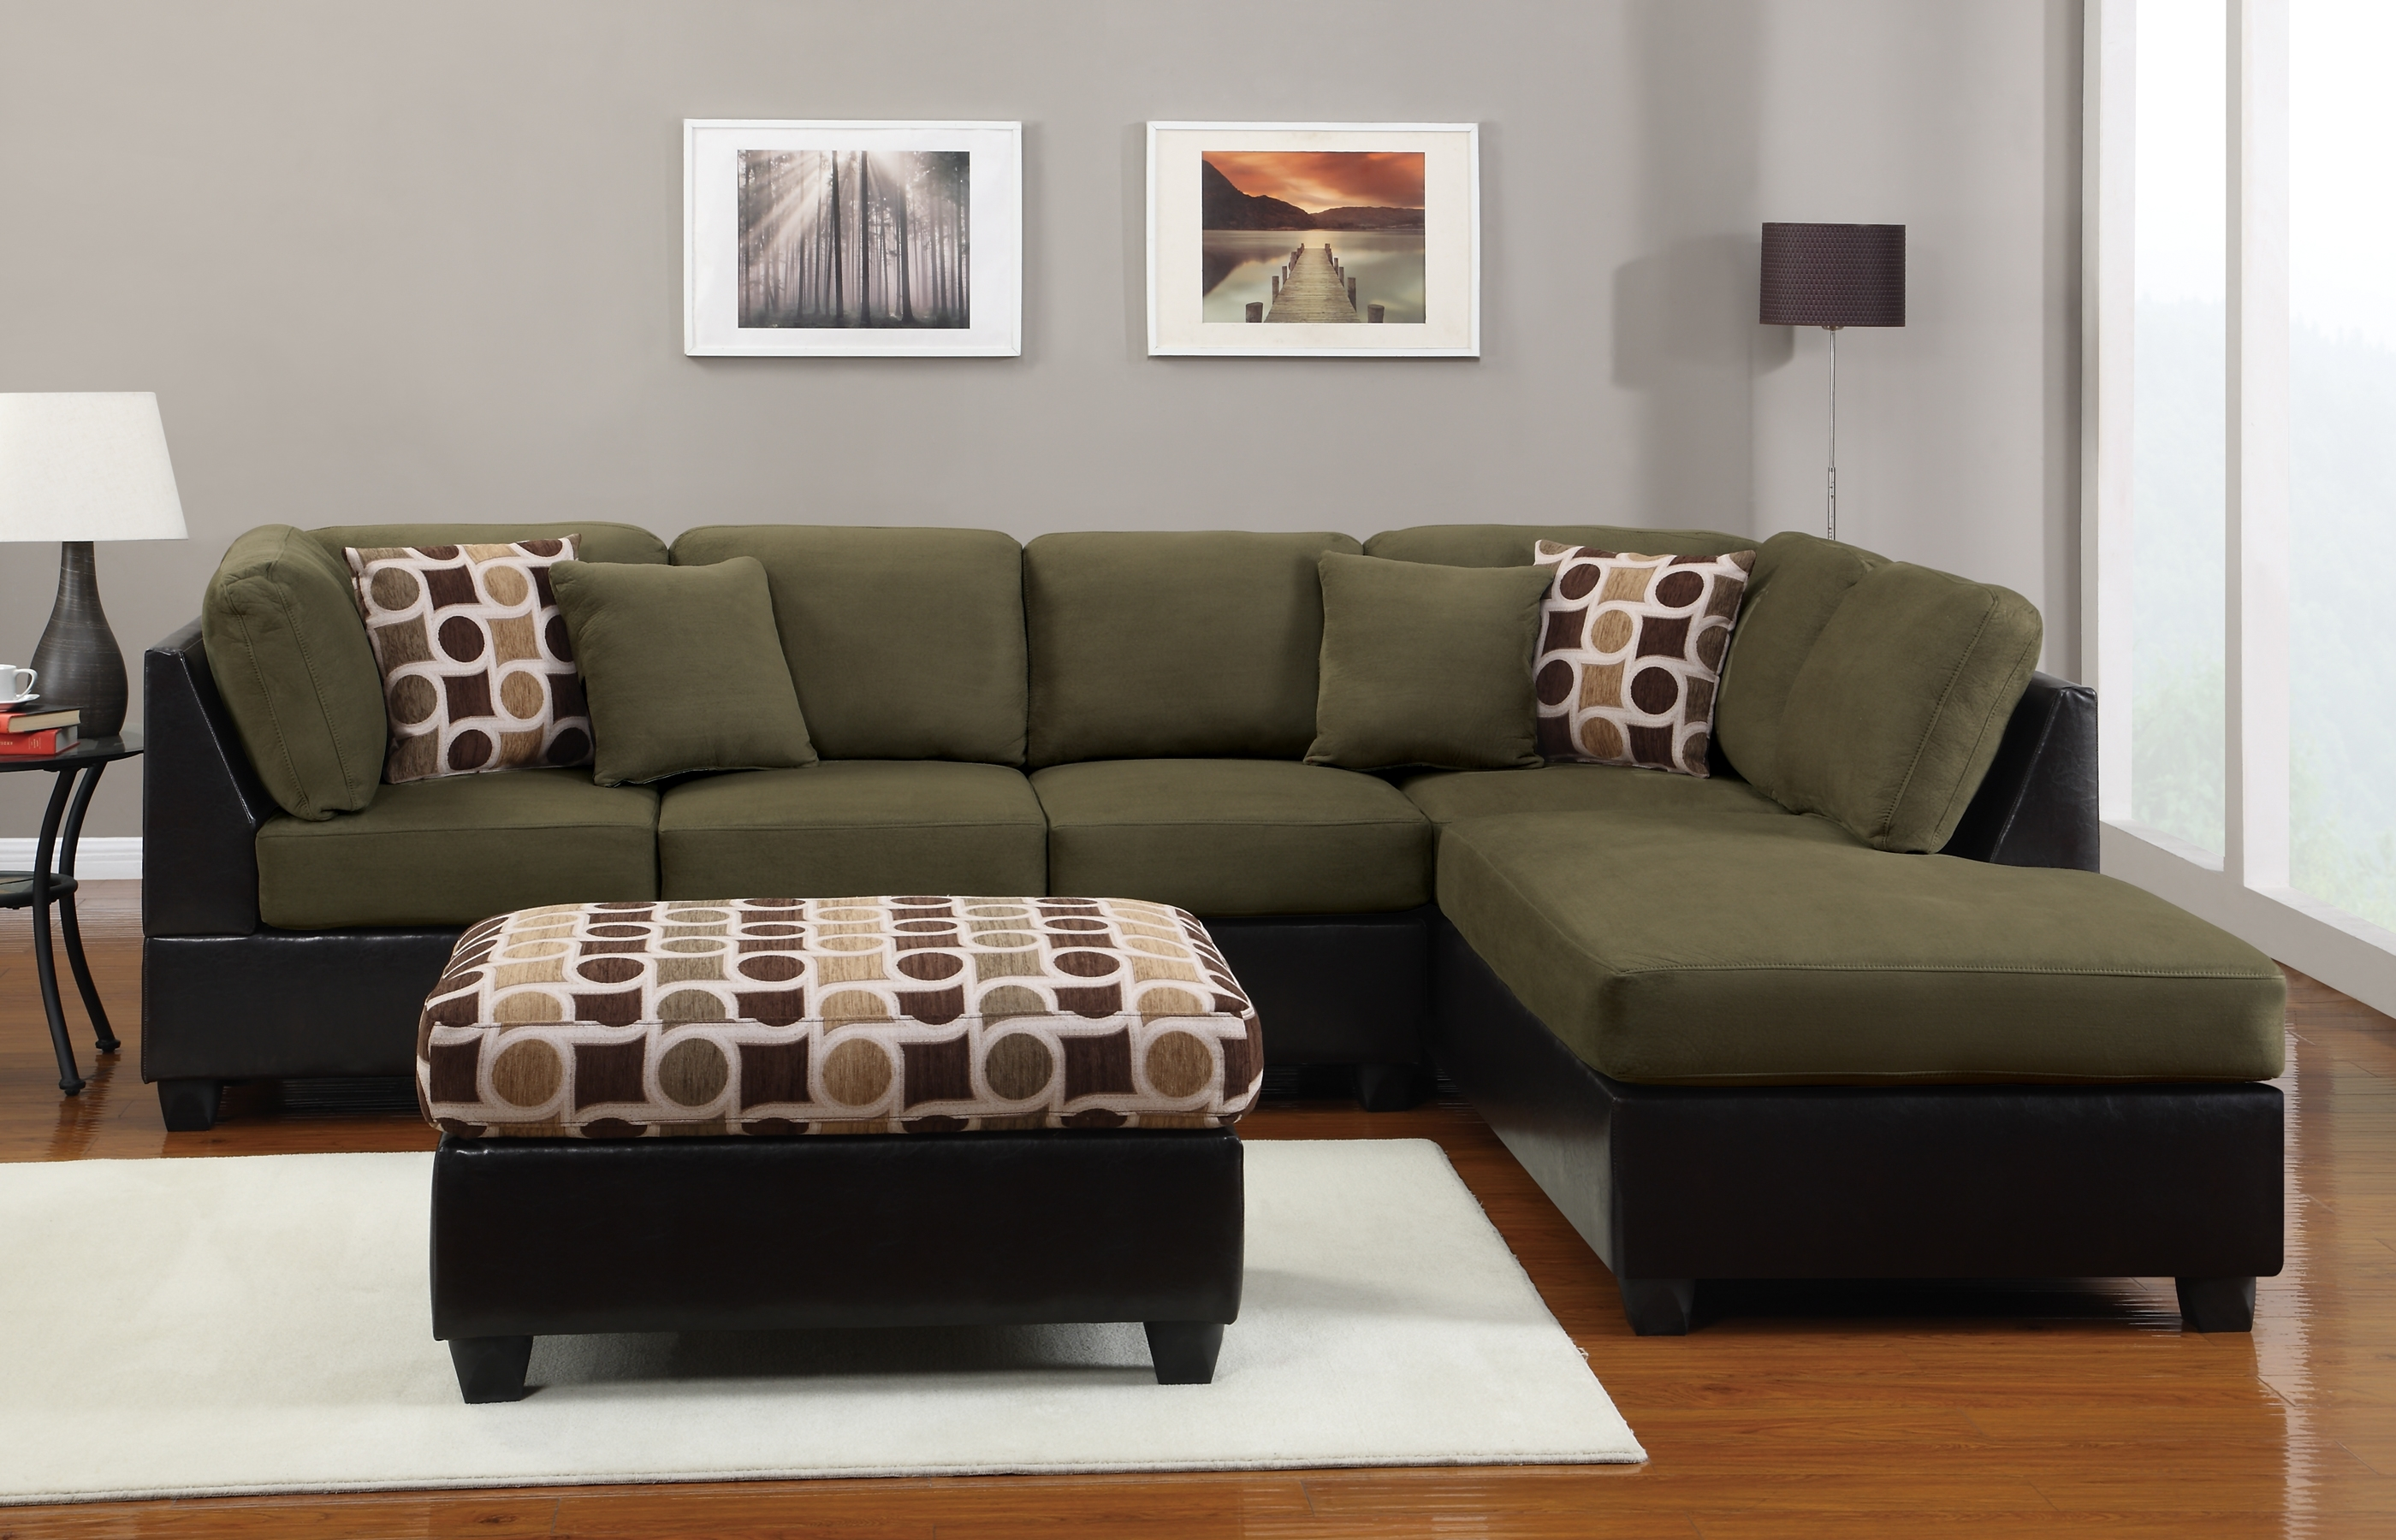 Espresso Leather Sectional Sofa With Right Chaise Lounge Using Intended For Recent L Shaped Sectionals With Chaise (View 6 of 15)